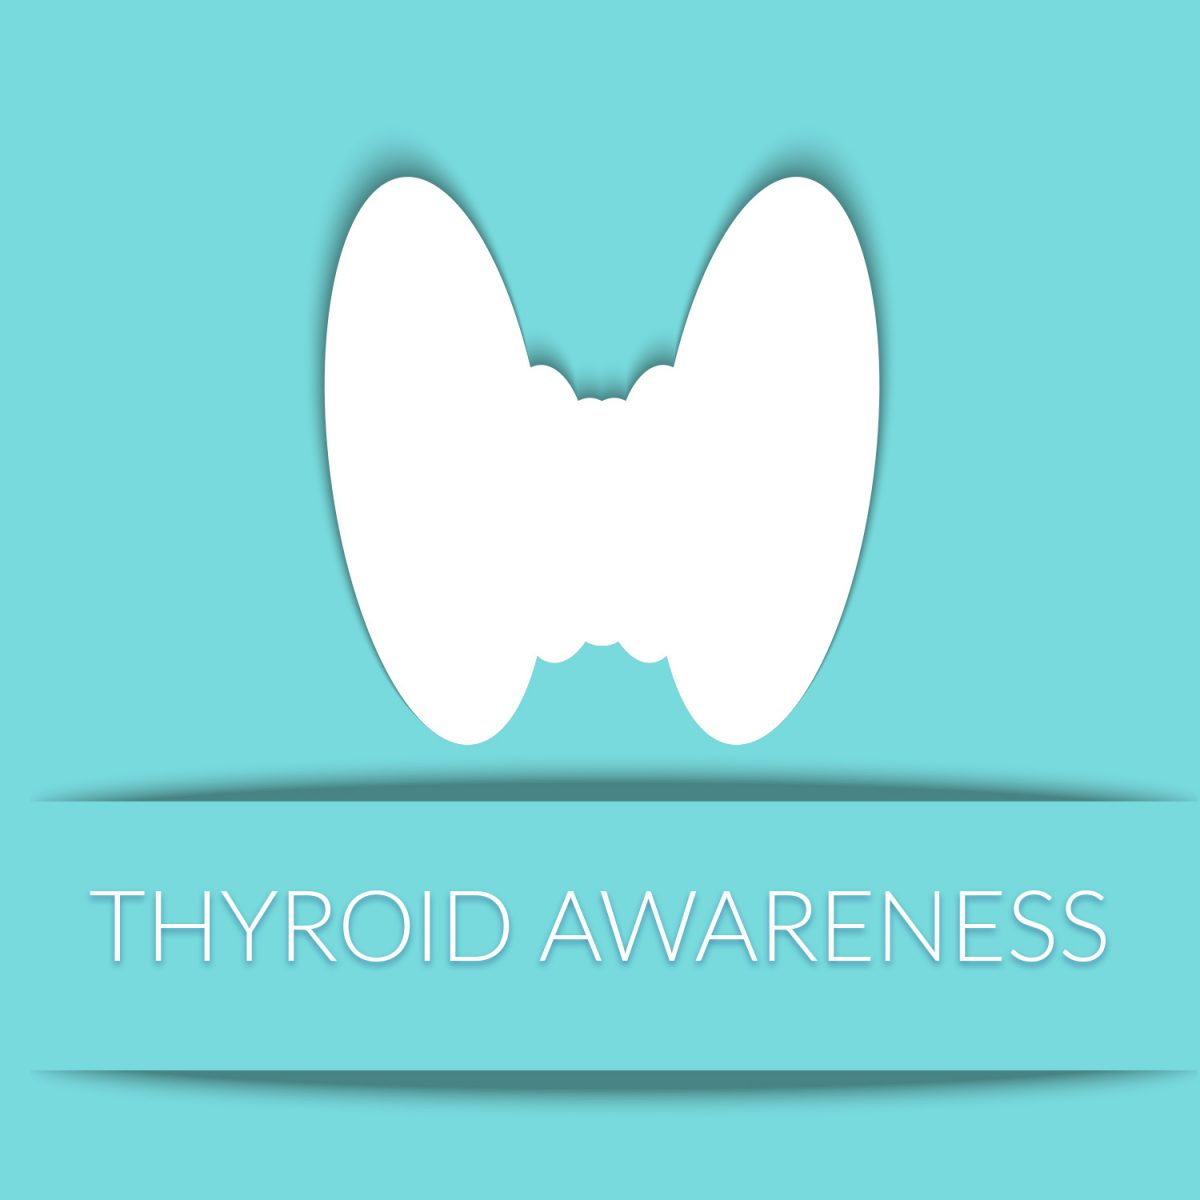 thyroid-awareness-1200x1200.jpg